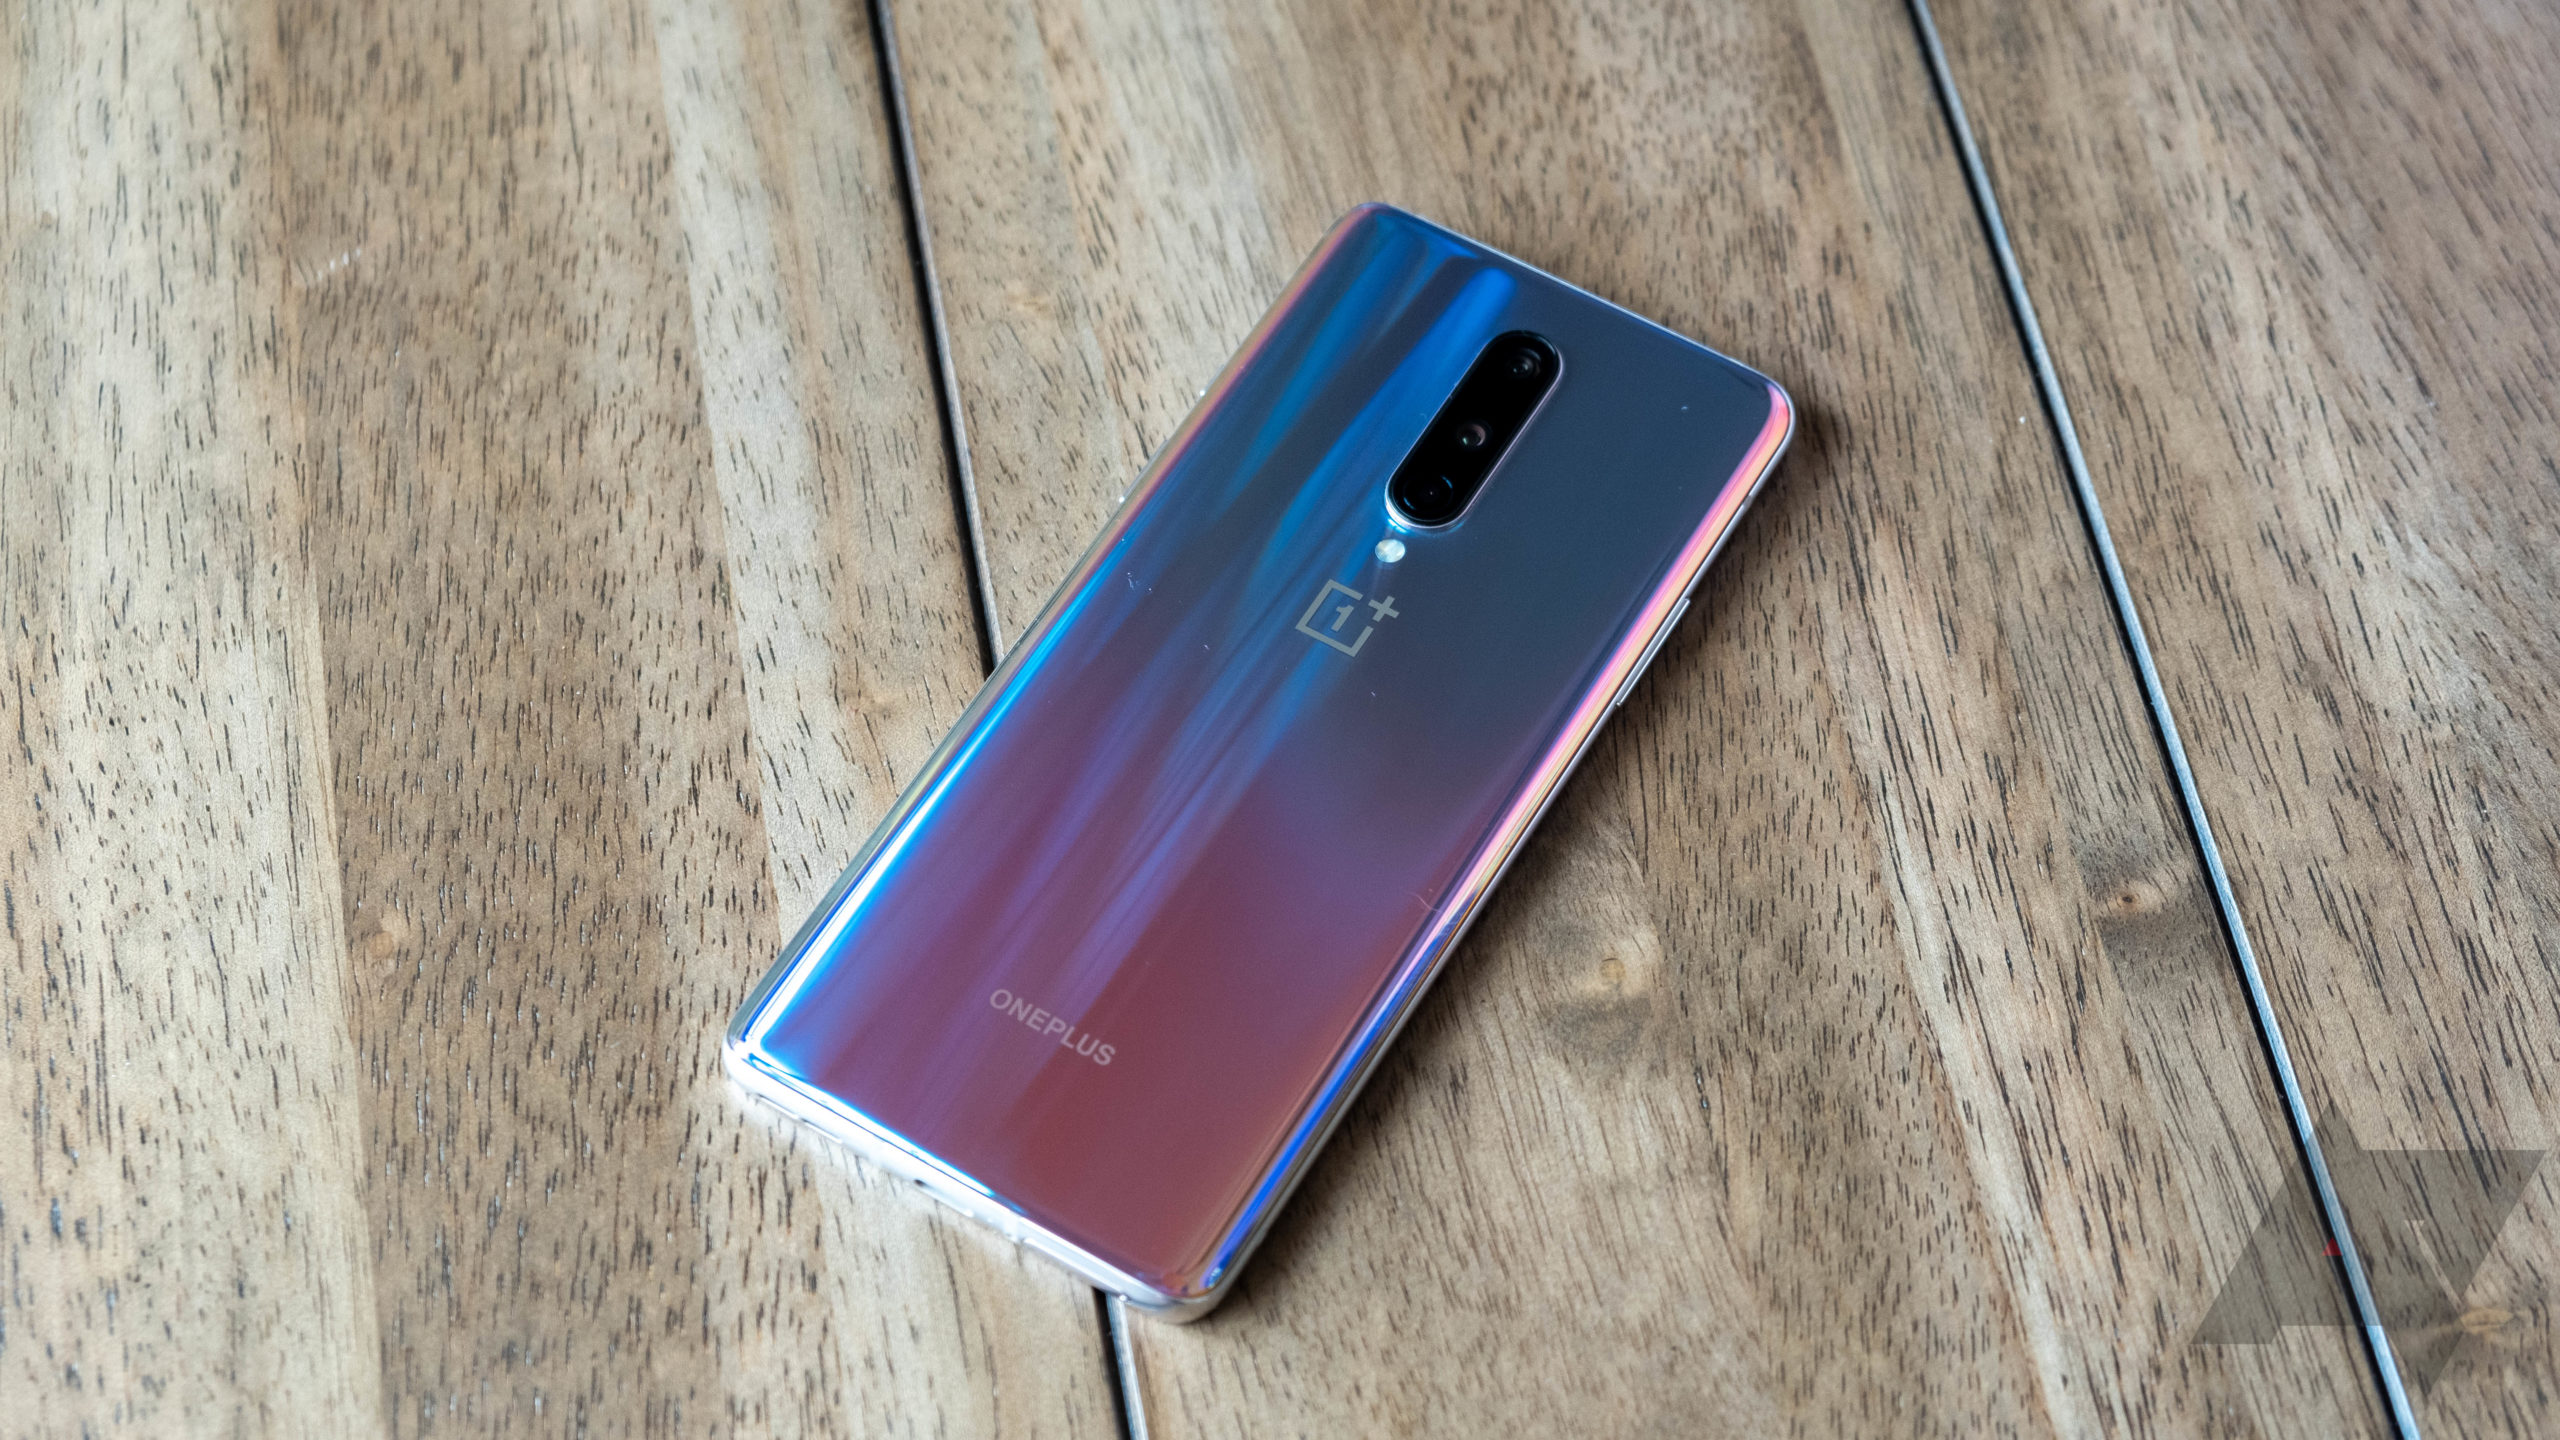 T-Mobile OnePlus 8 update adds new 5G band support